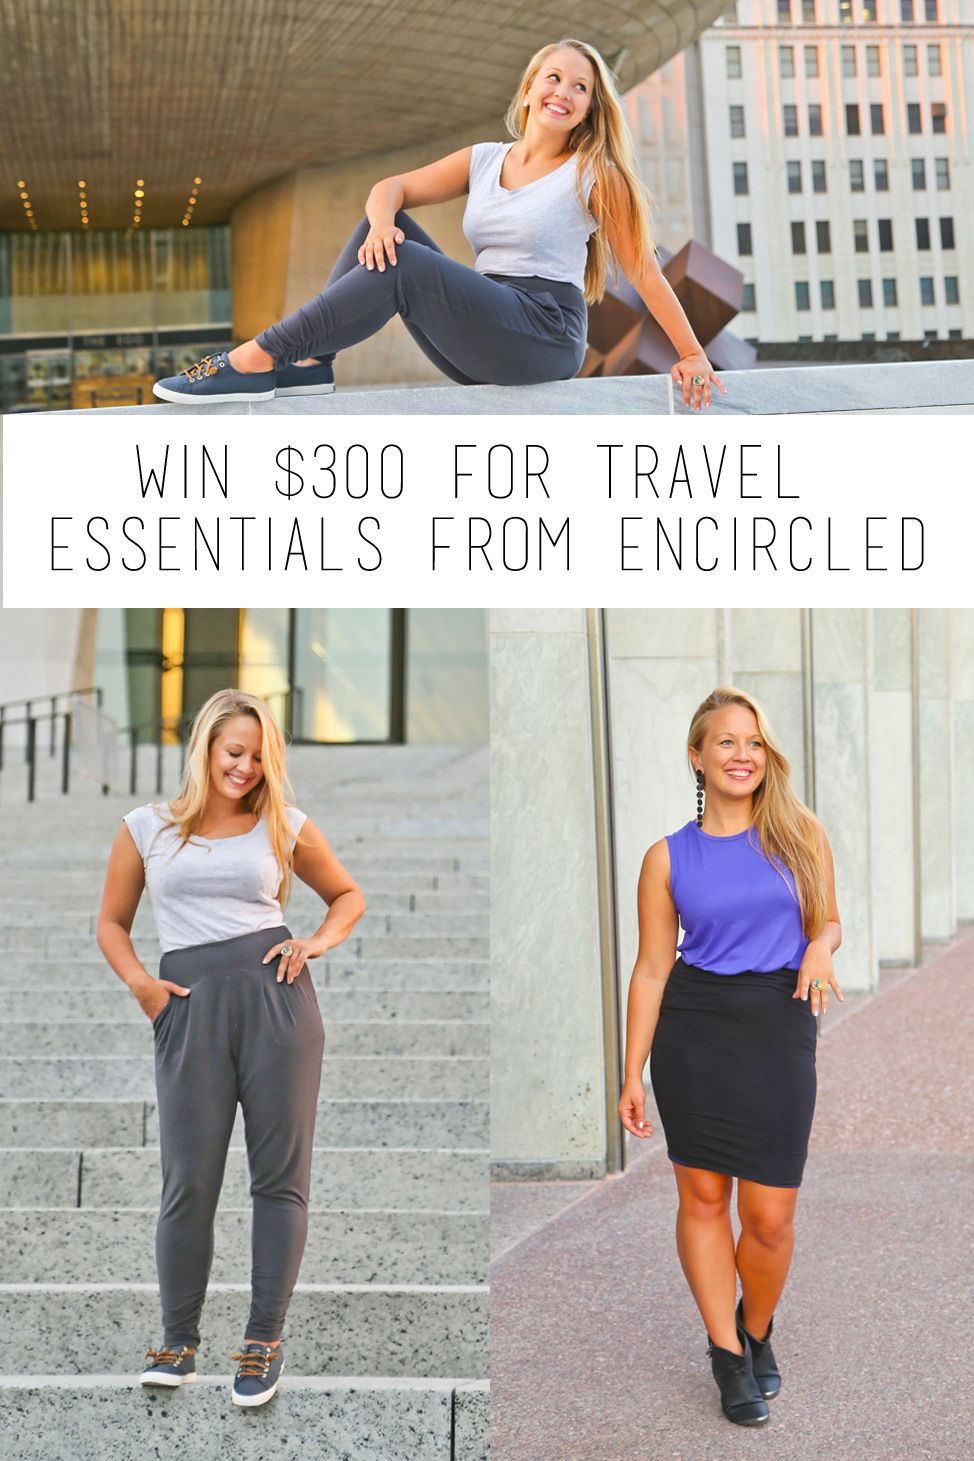 Win $300 for Travel Essentials From Encircled